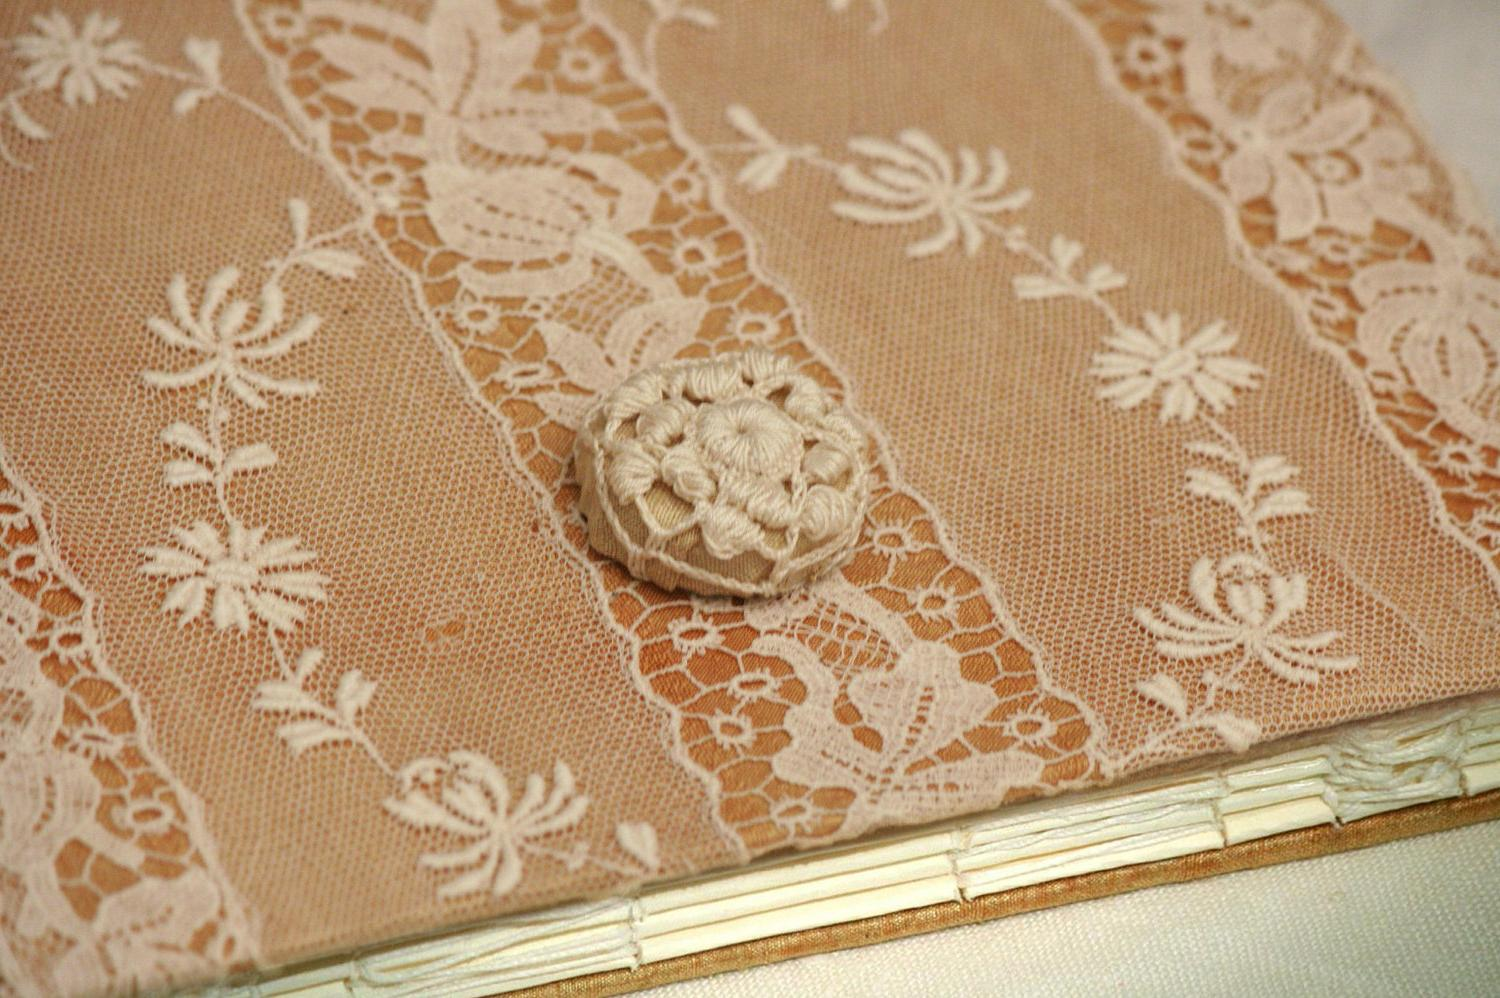 OOAK Memory Guest Book, Lace Wedding Guest Book, Scrapbook, Polaroids,